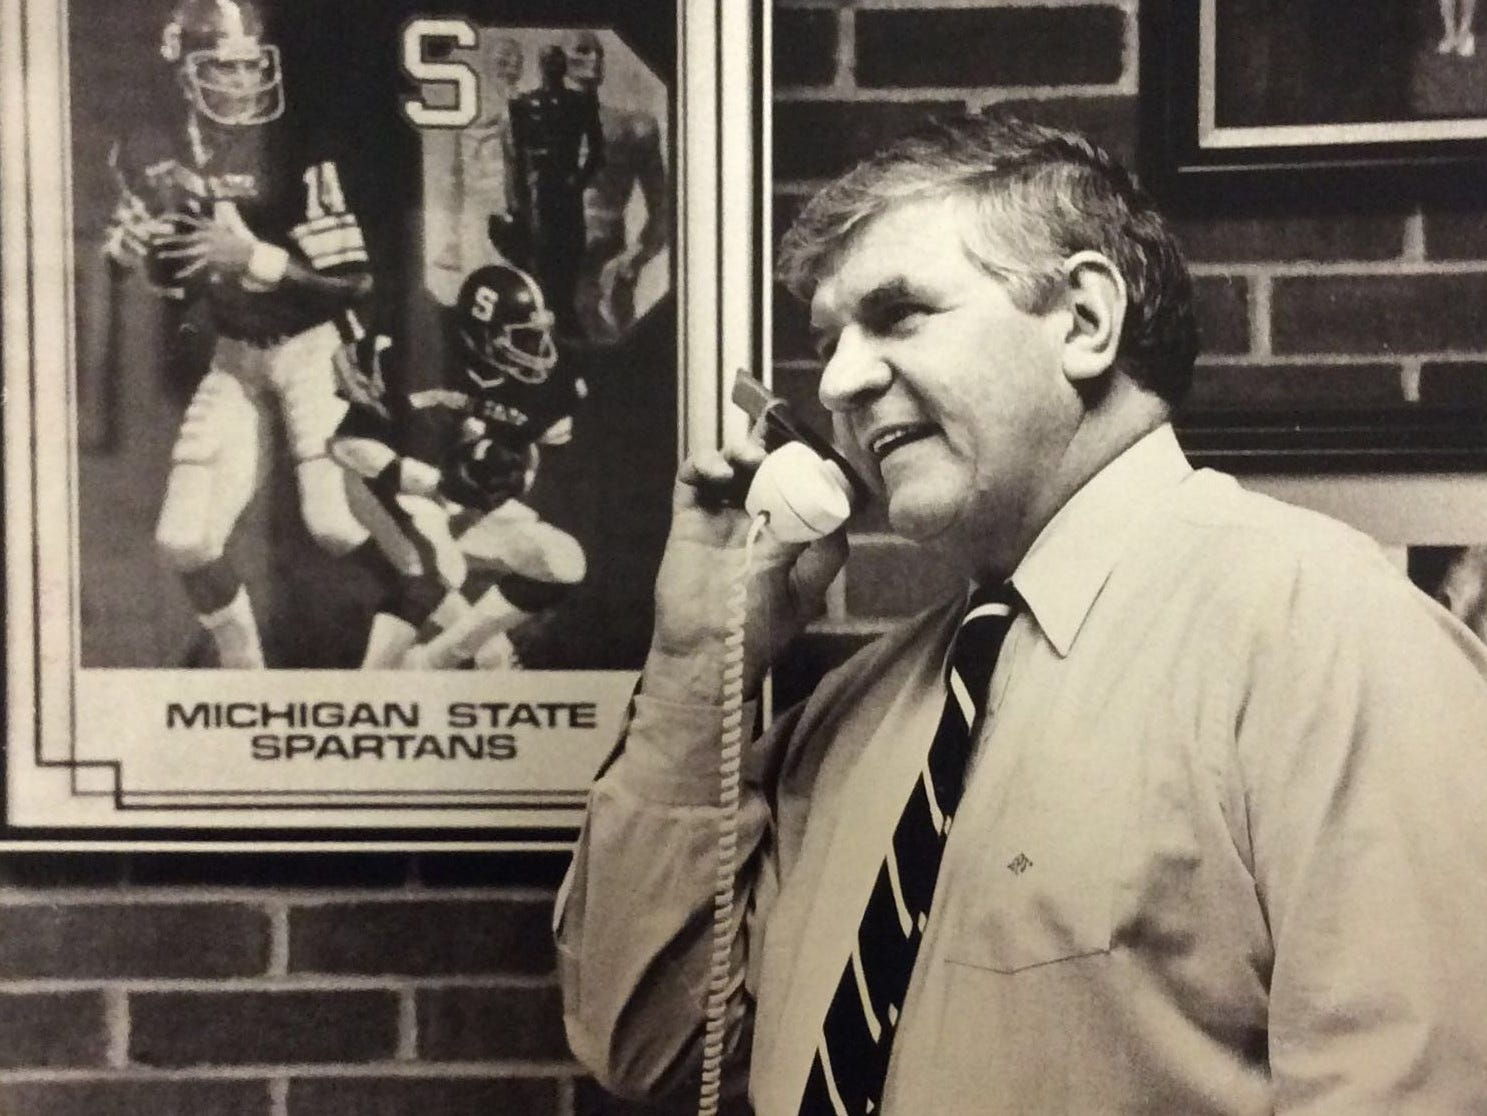 MSU football coach George Perles talks to recruit James Johnson on his football office phone, February 1987.